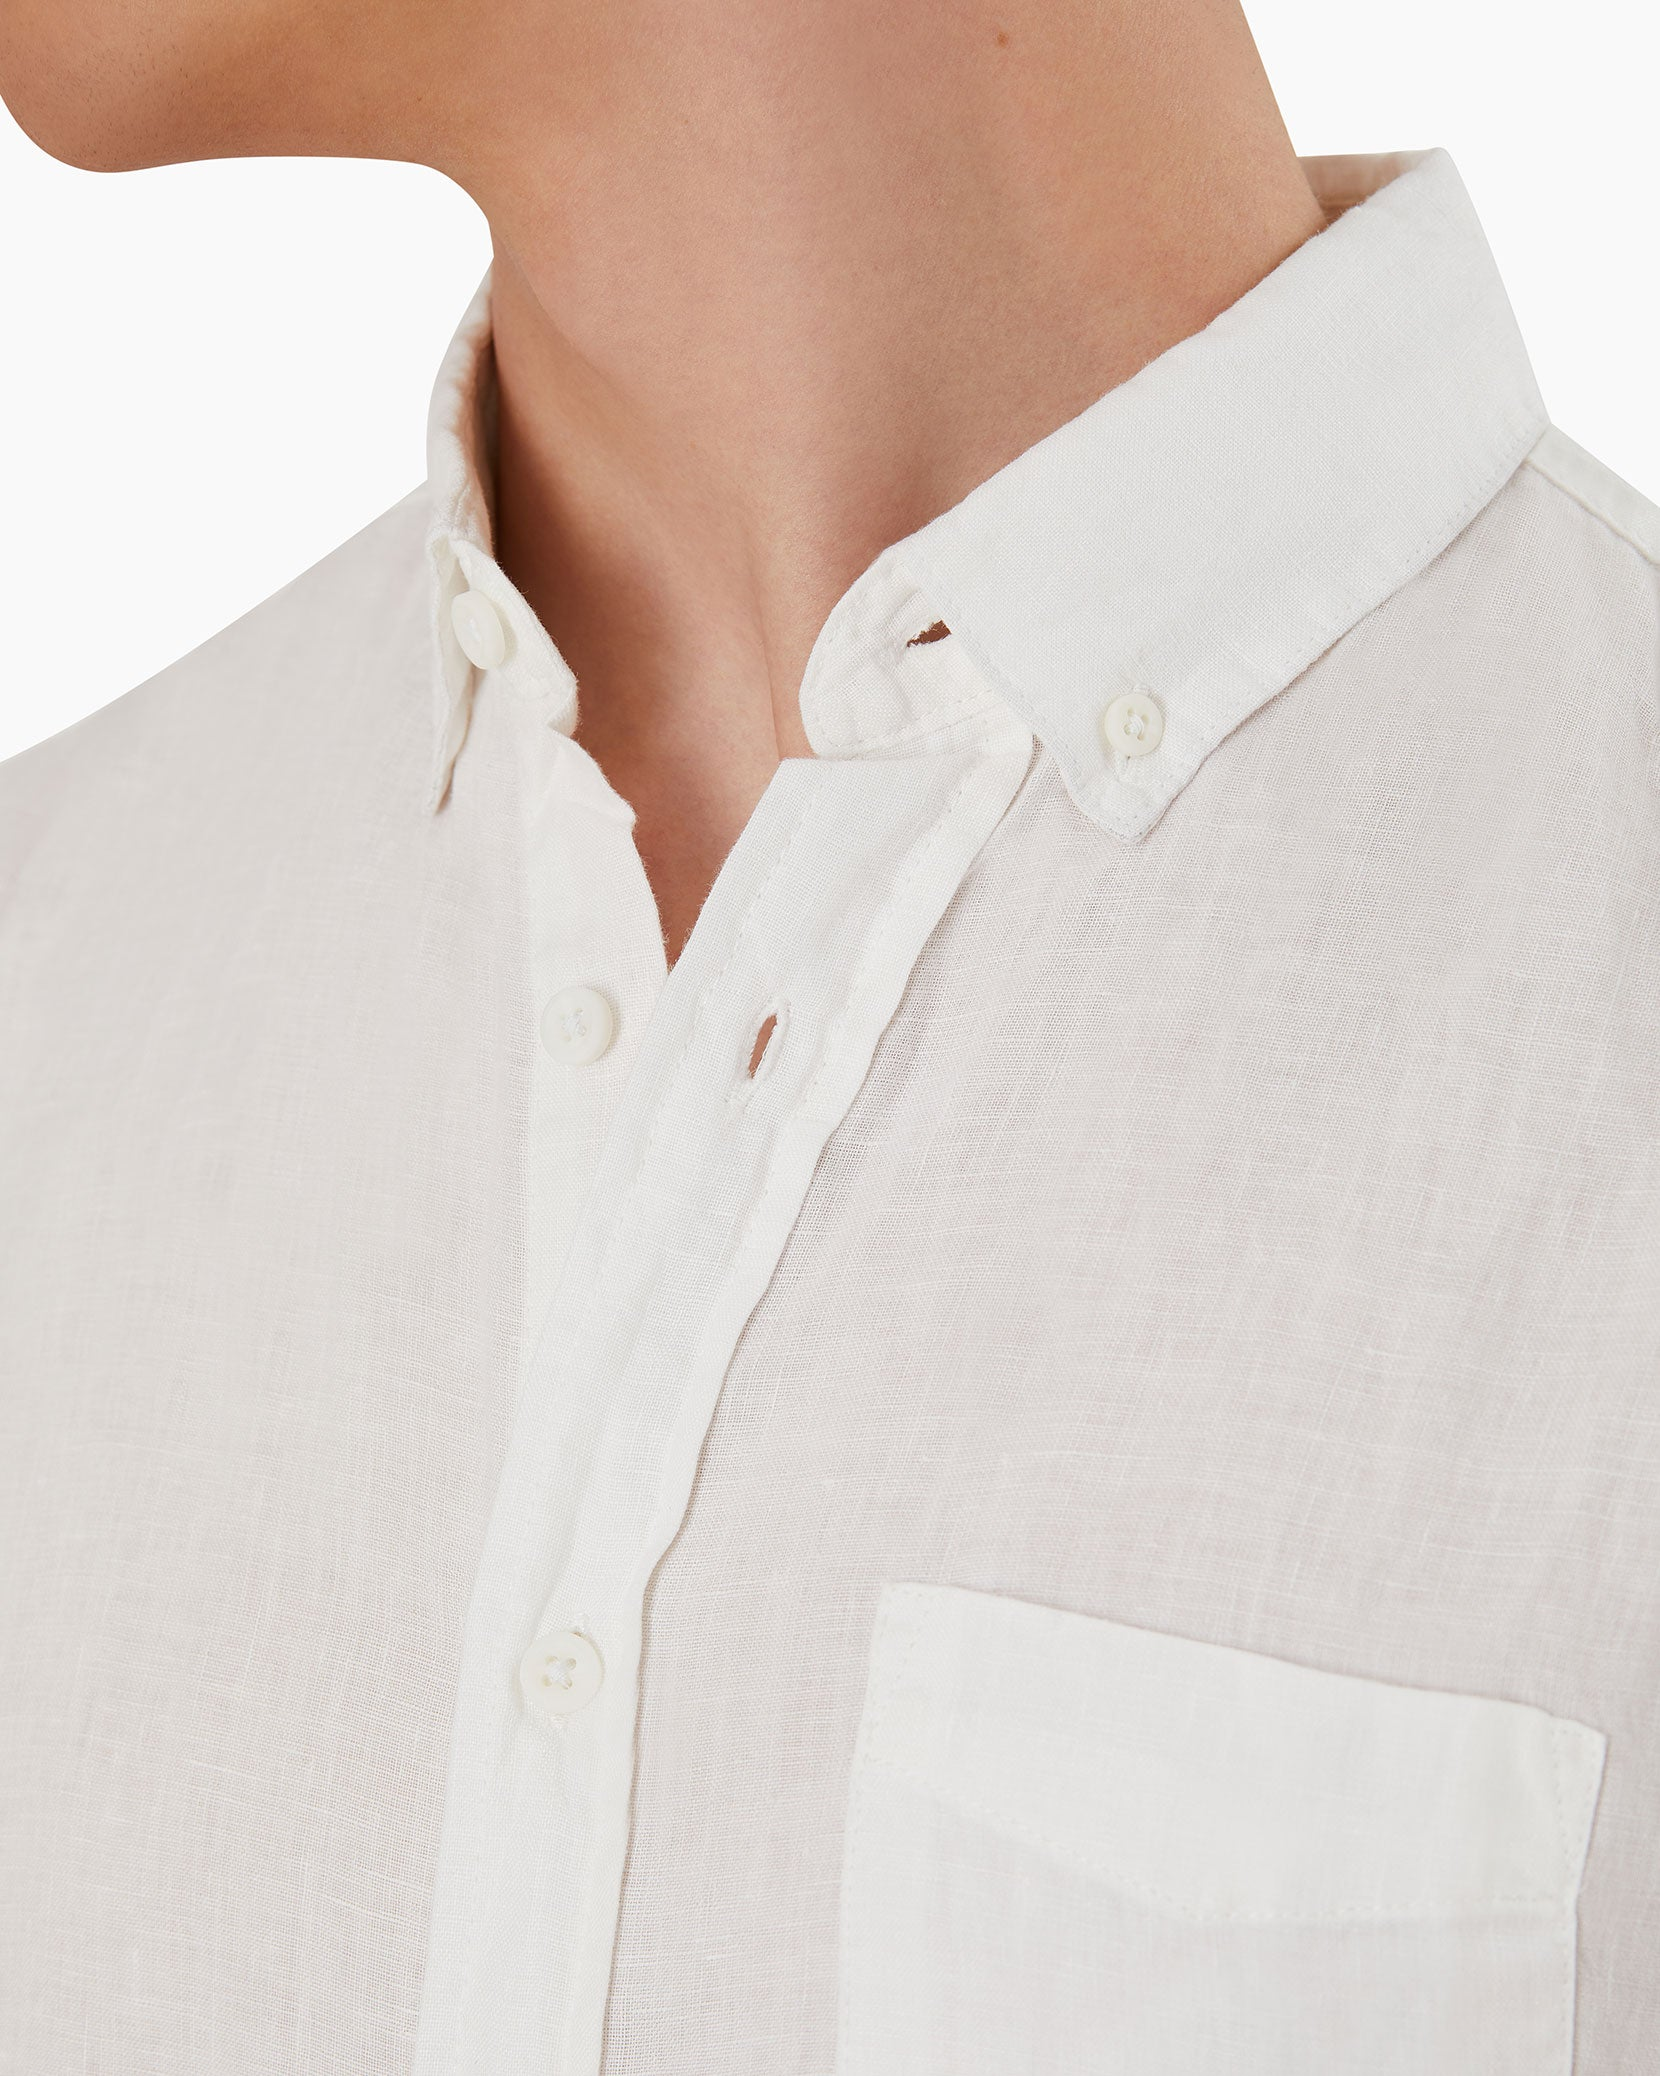 Stretch Linen Short Sleeve Shirt in White - 4 - Onia